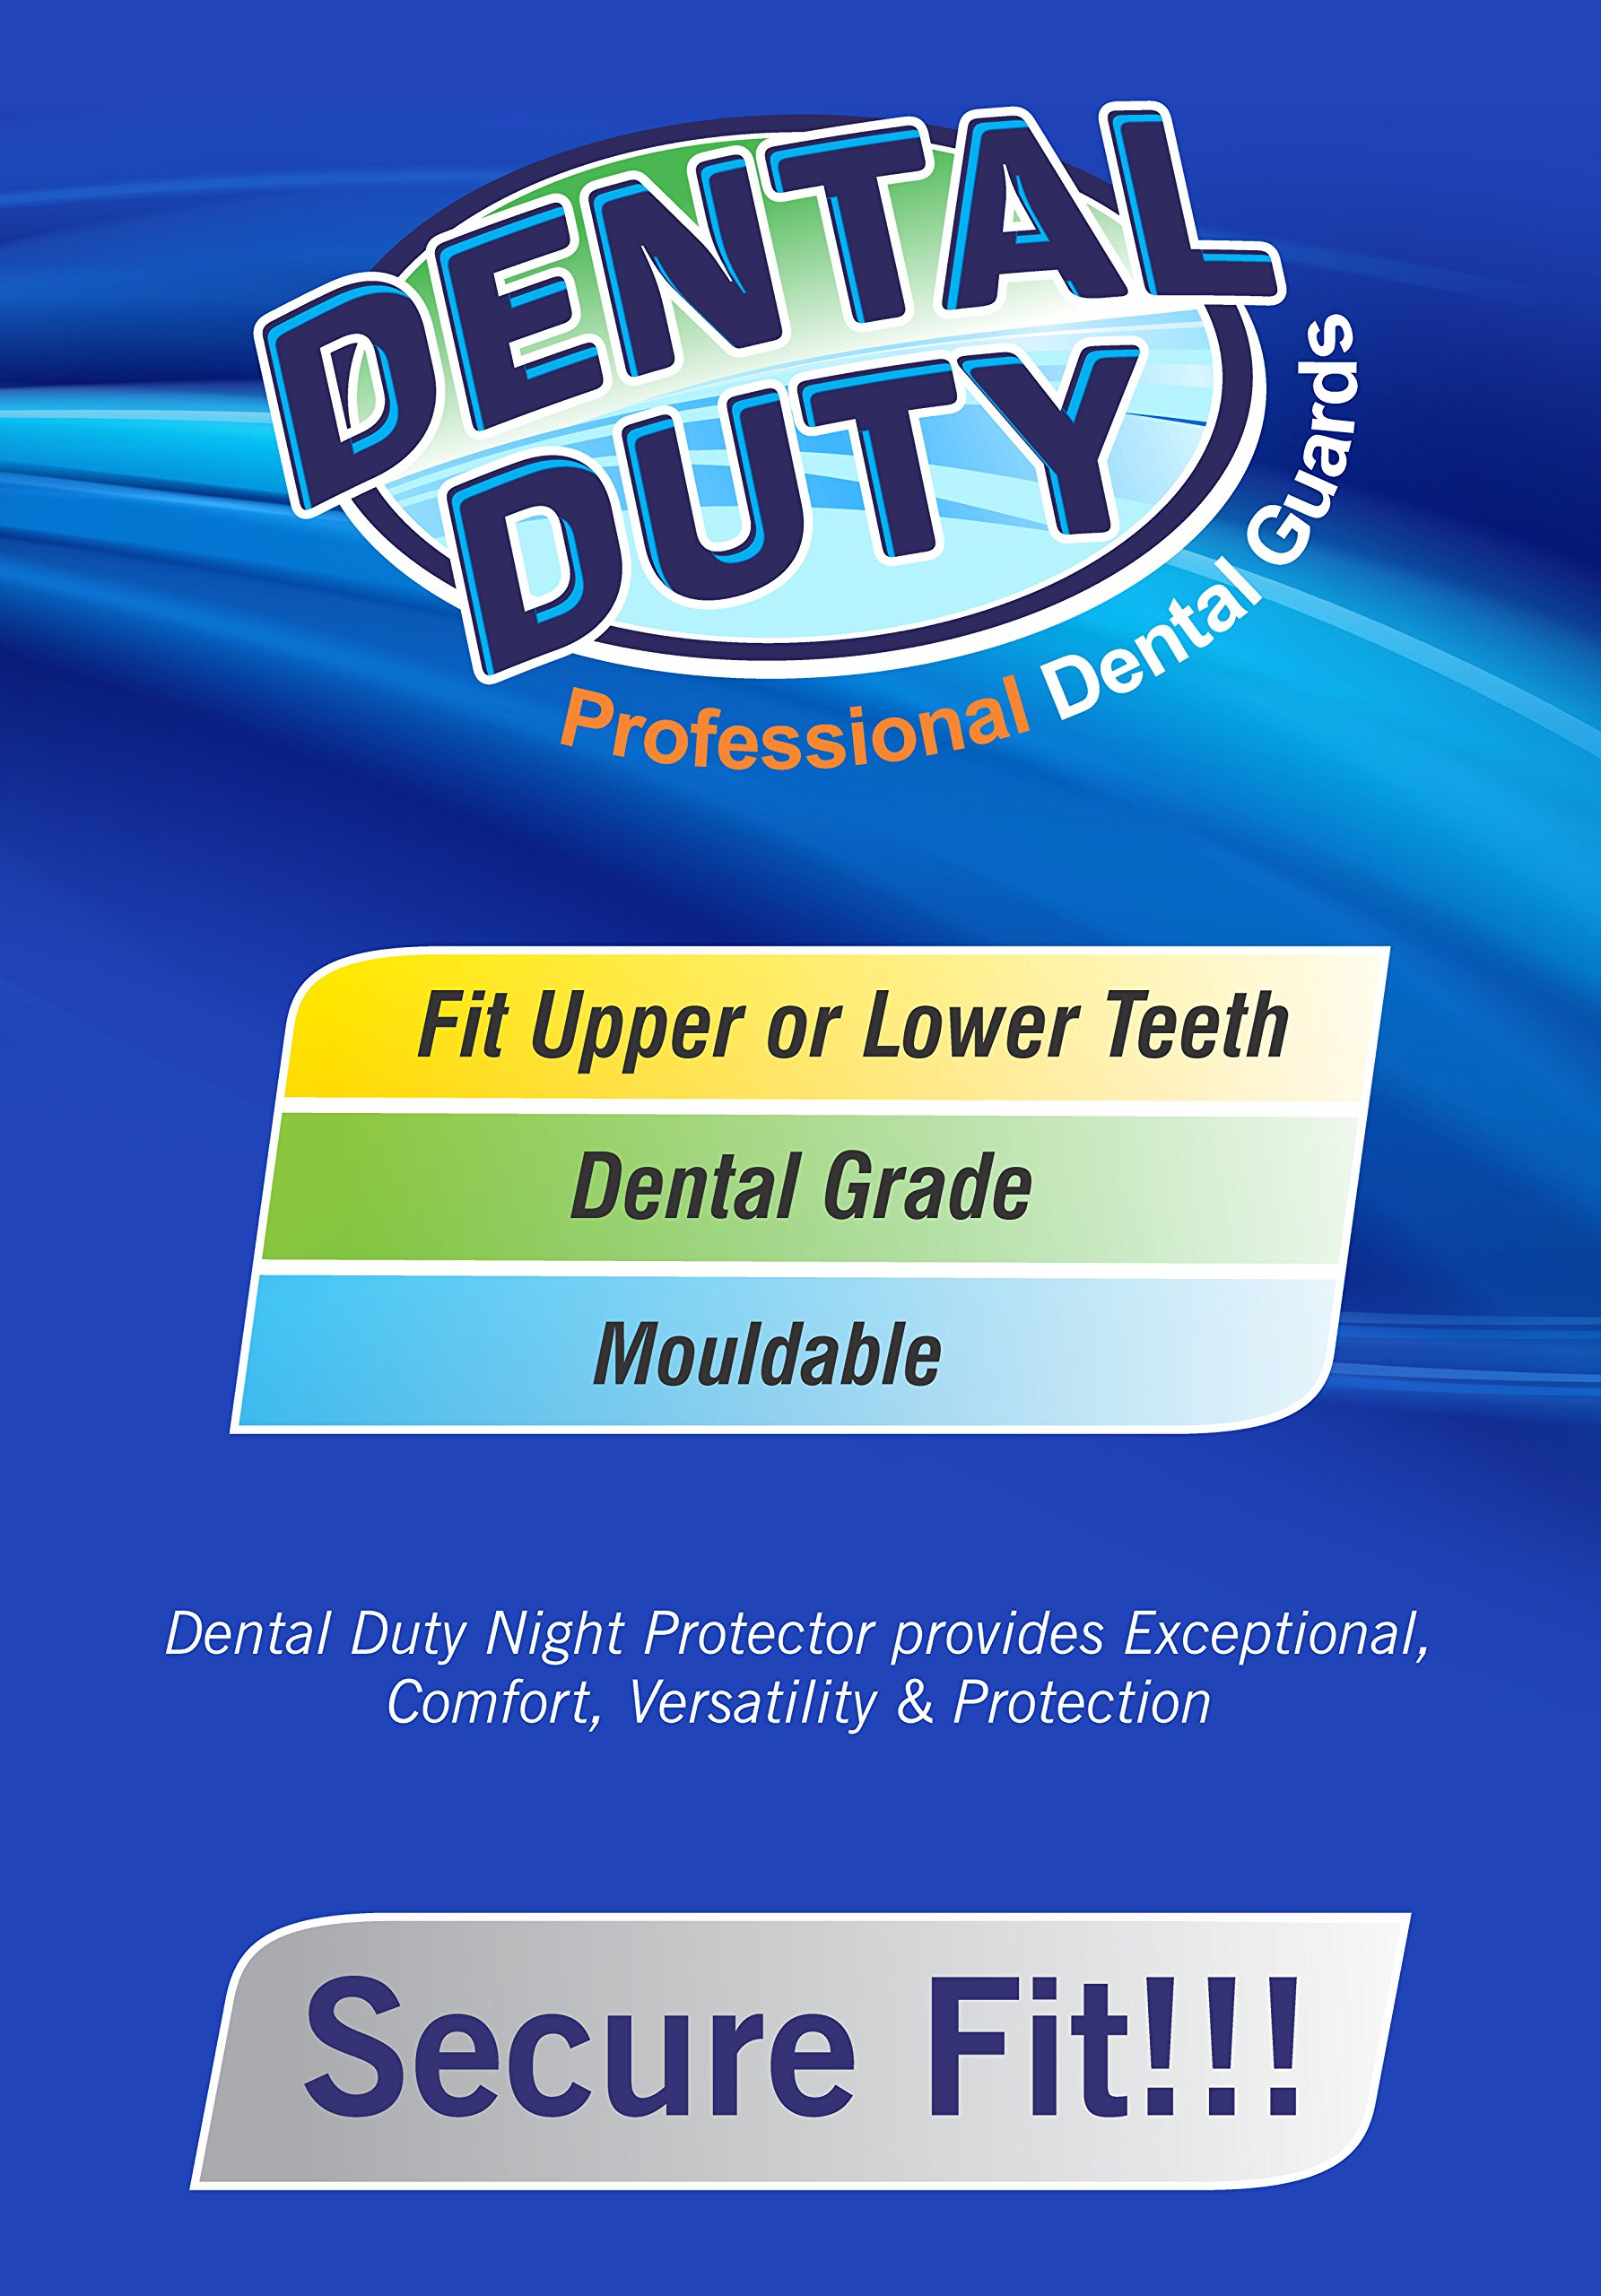 Professional Dental Guard -Pack Of 4- Stops Teeth Grinding, Bruxism, Eliminates Teeth Clenching Includes Fitting Instructions & Anti-Bacterial Case. Satisfaction Is Guaranteed! by Dental Duty (Image #2)